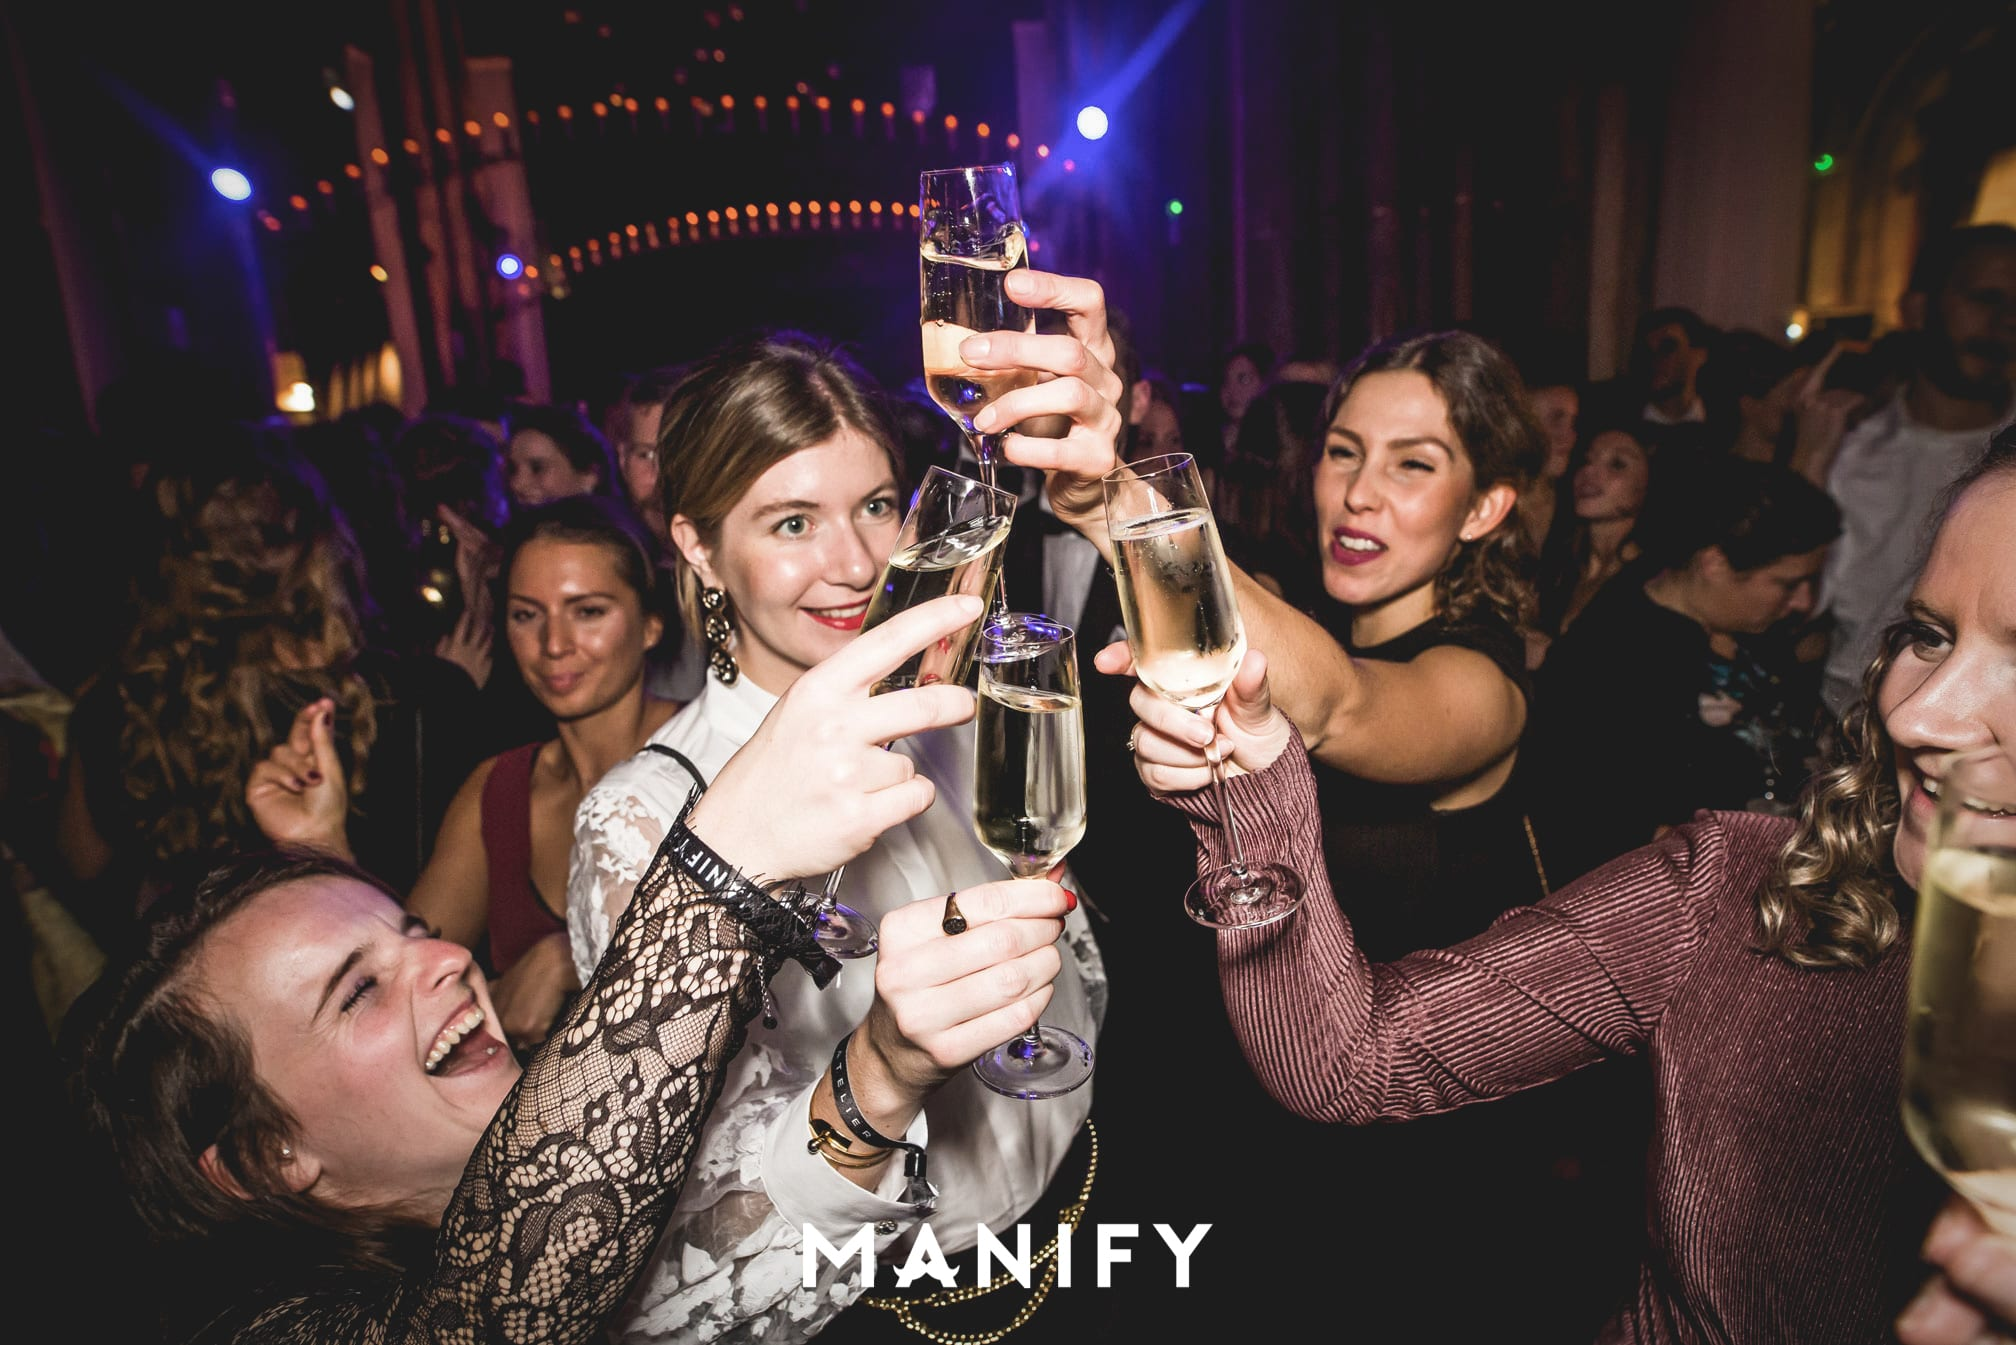 MANIFY_Out_of_office-Orangerie-06-12-19_WM-101-manify